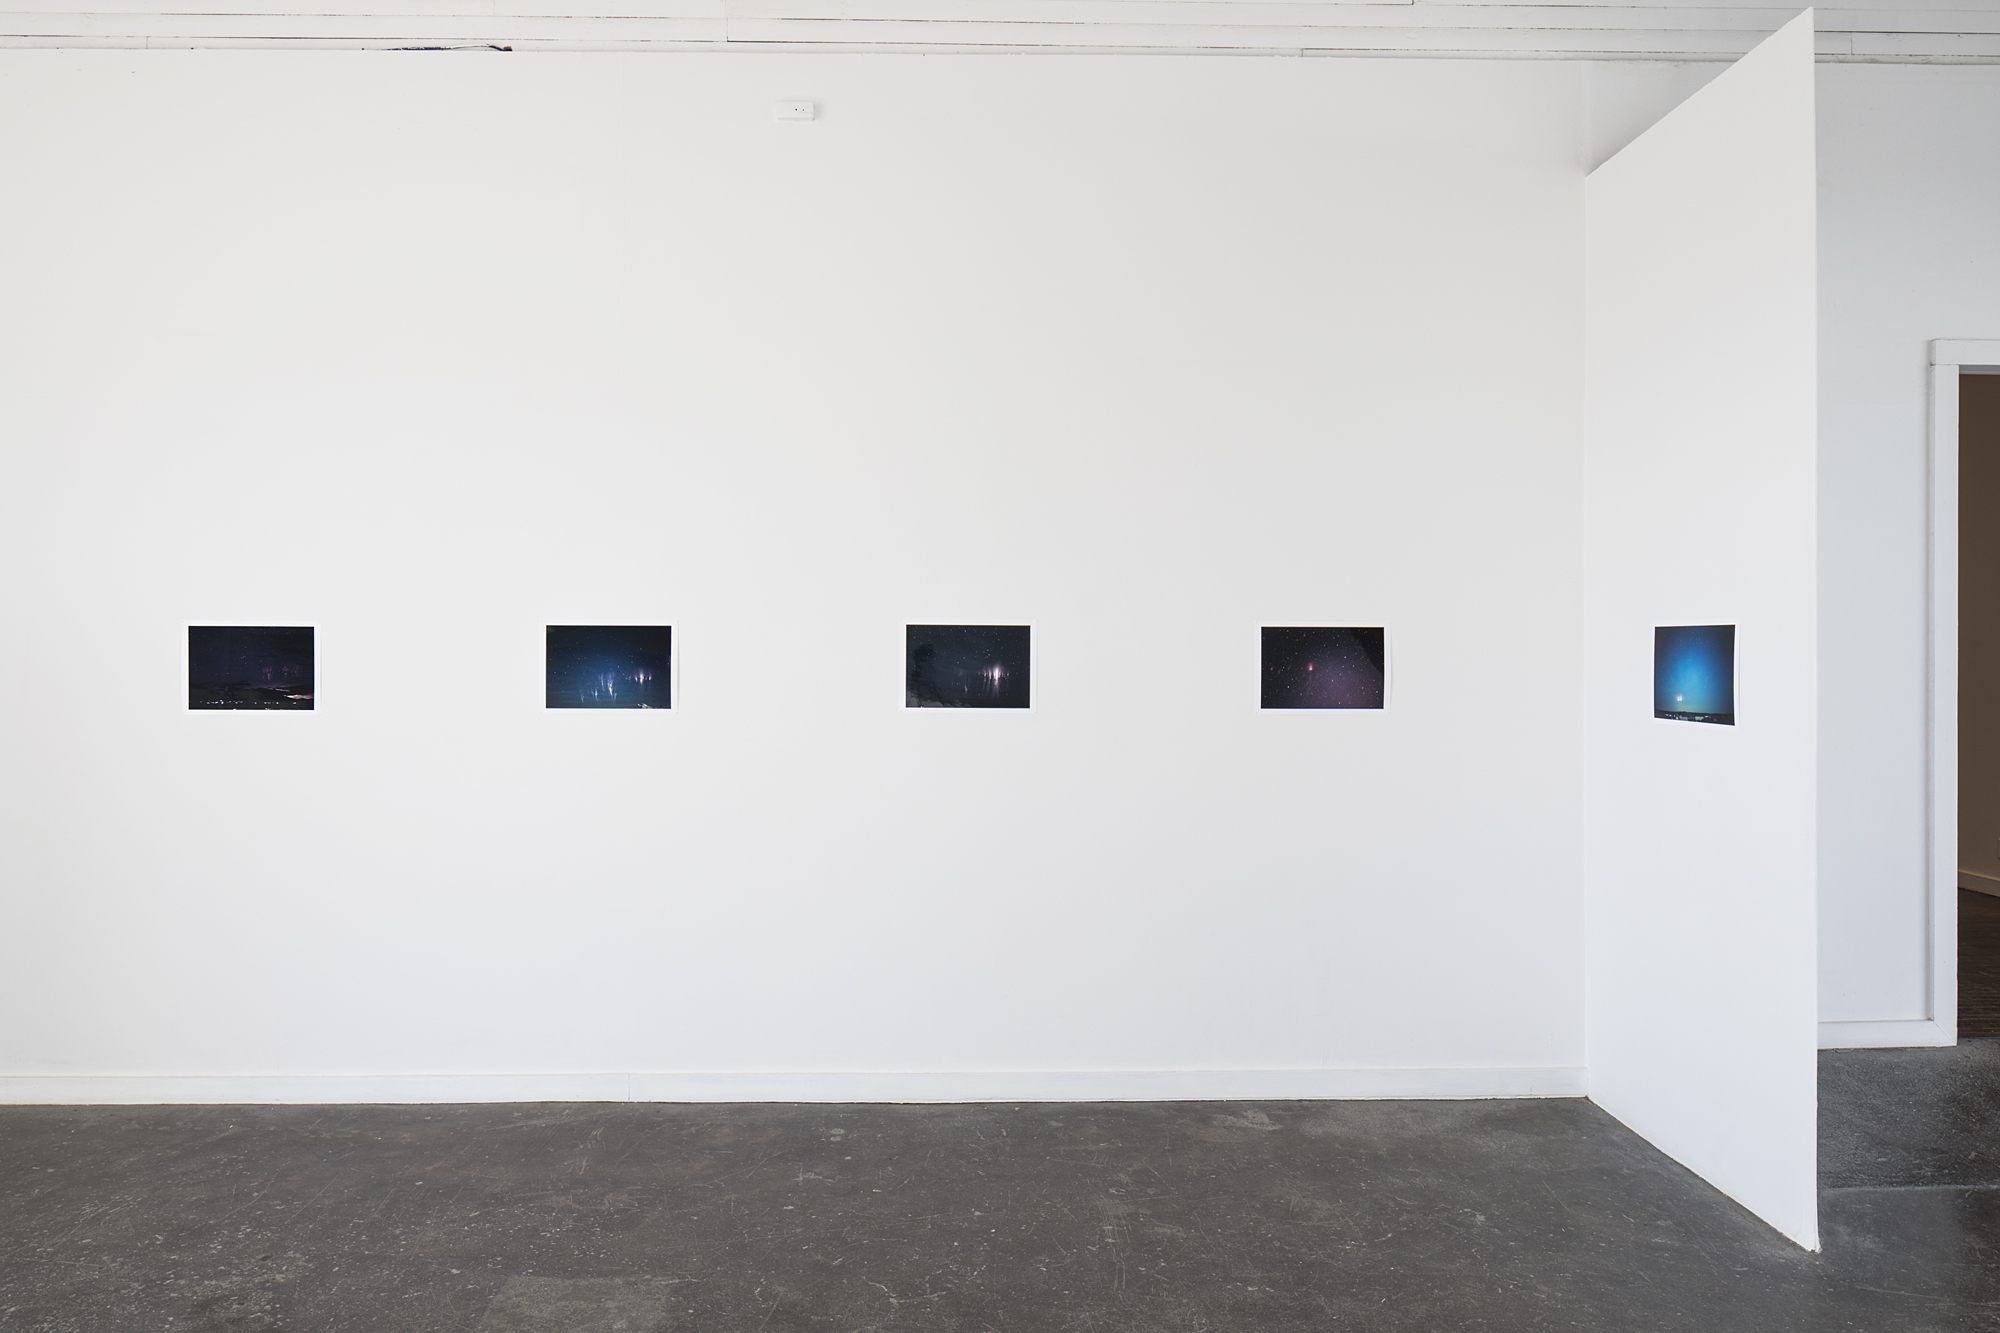 Thomas Ashcraft_Transient Luminous Events Above The Mesosphere_Photo by Alex_Marks_Strange_Attractor (1)